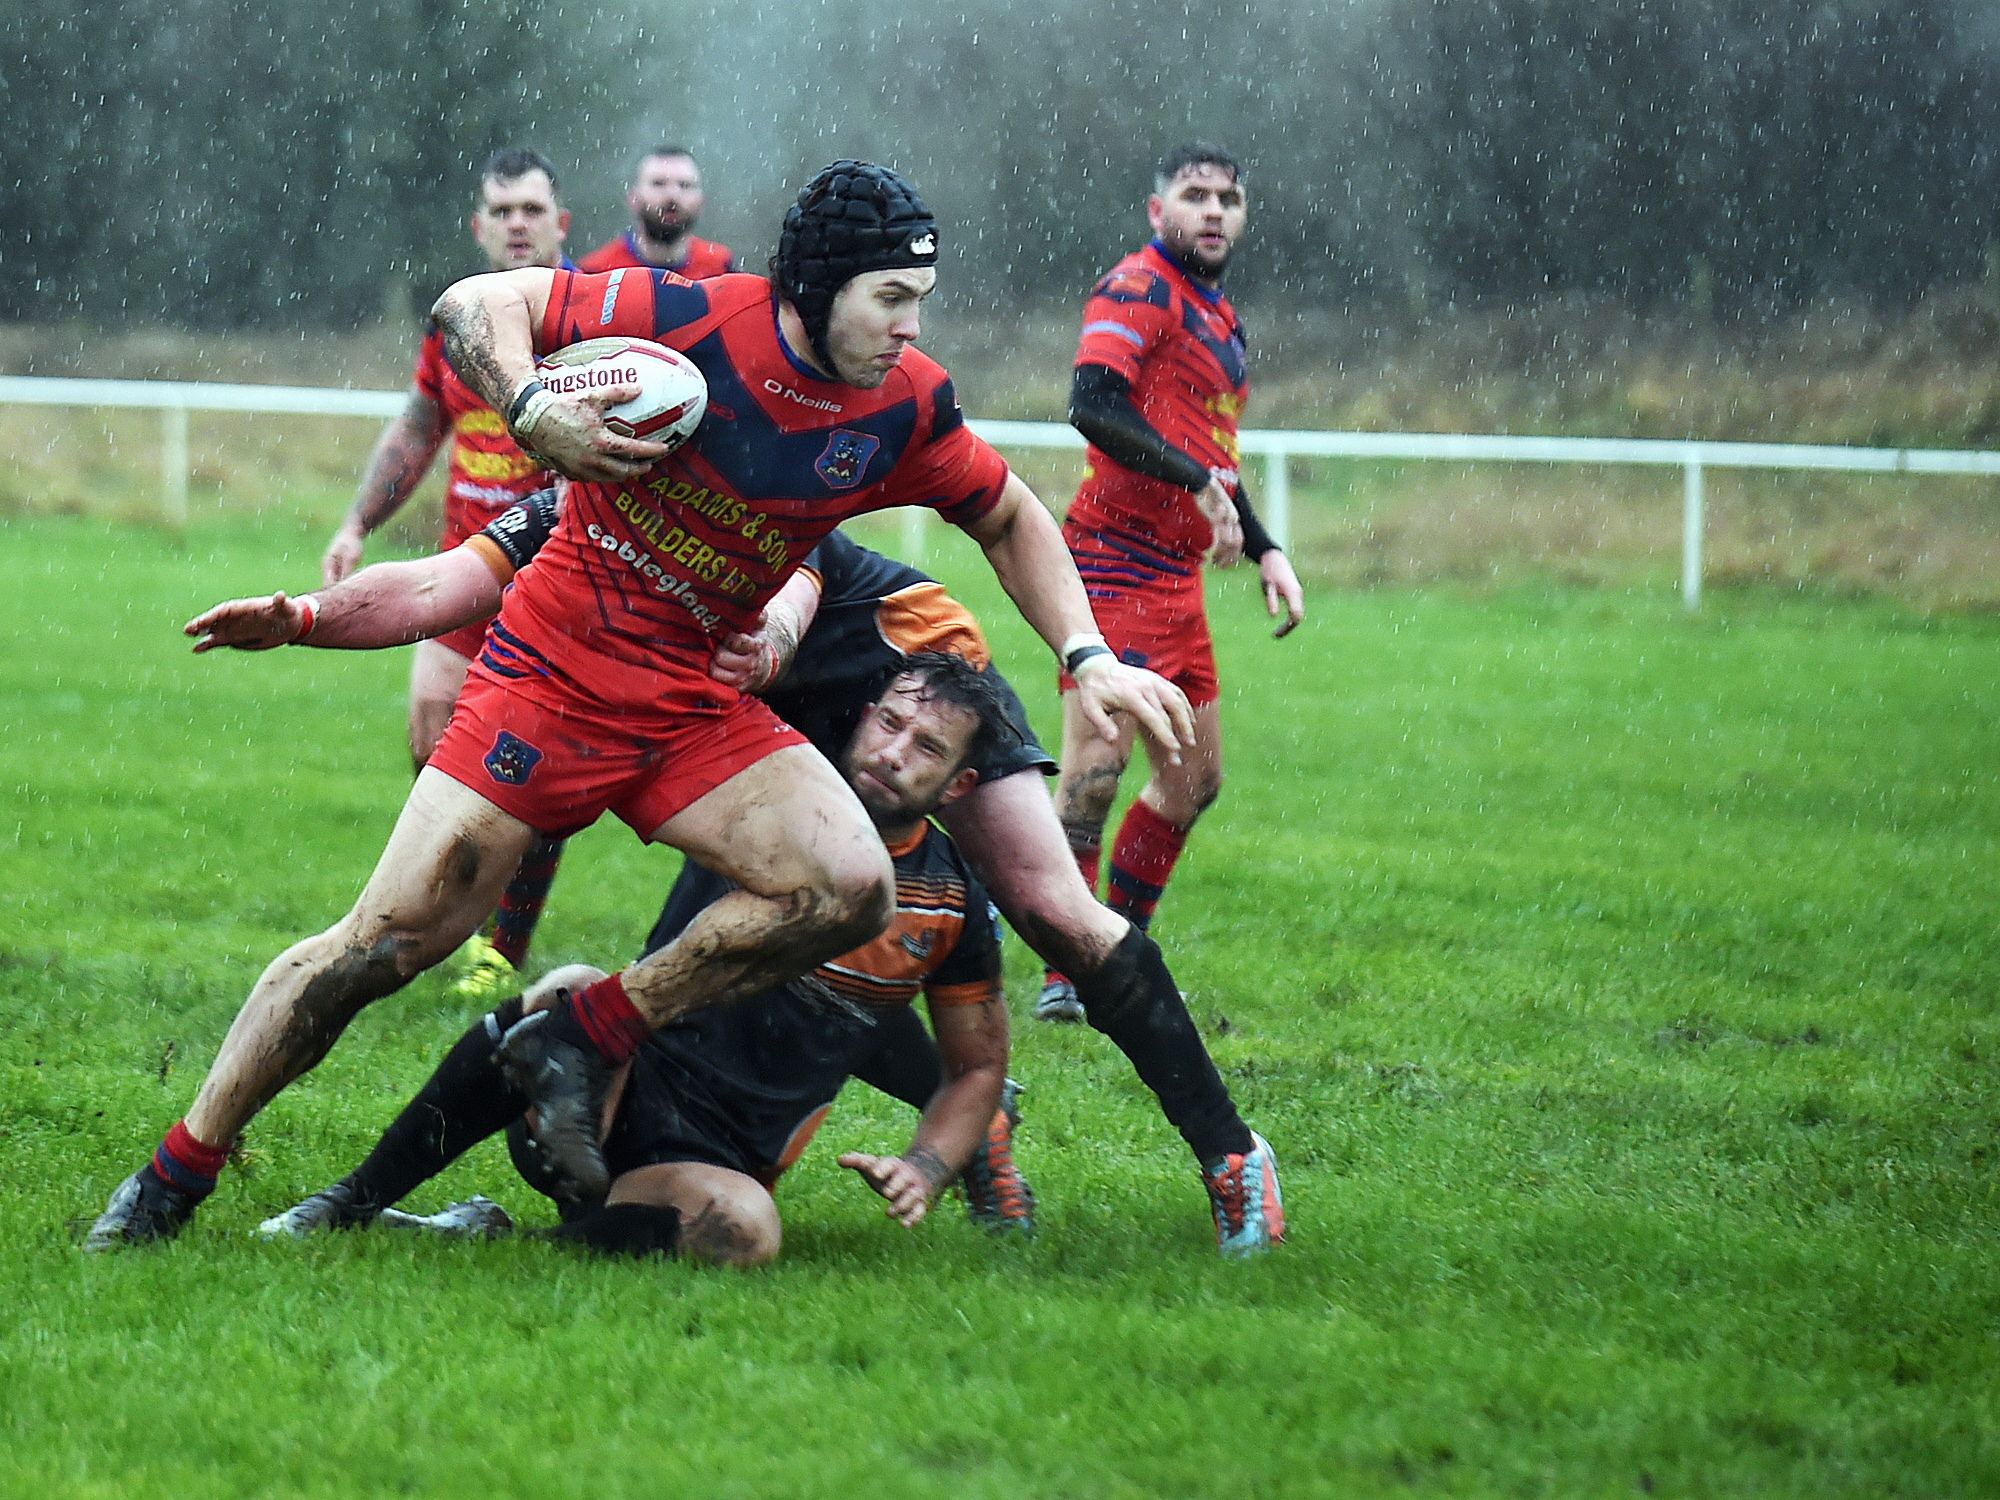 Challenge Cup Distington's Bryan Ritchie runs the ball in strongly against Torfaen Tigers  pic Mike McKenzie